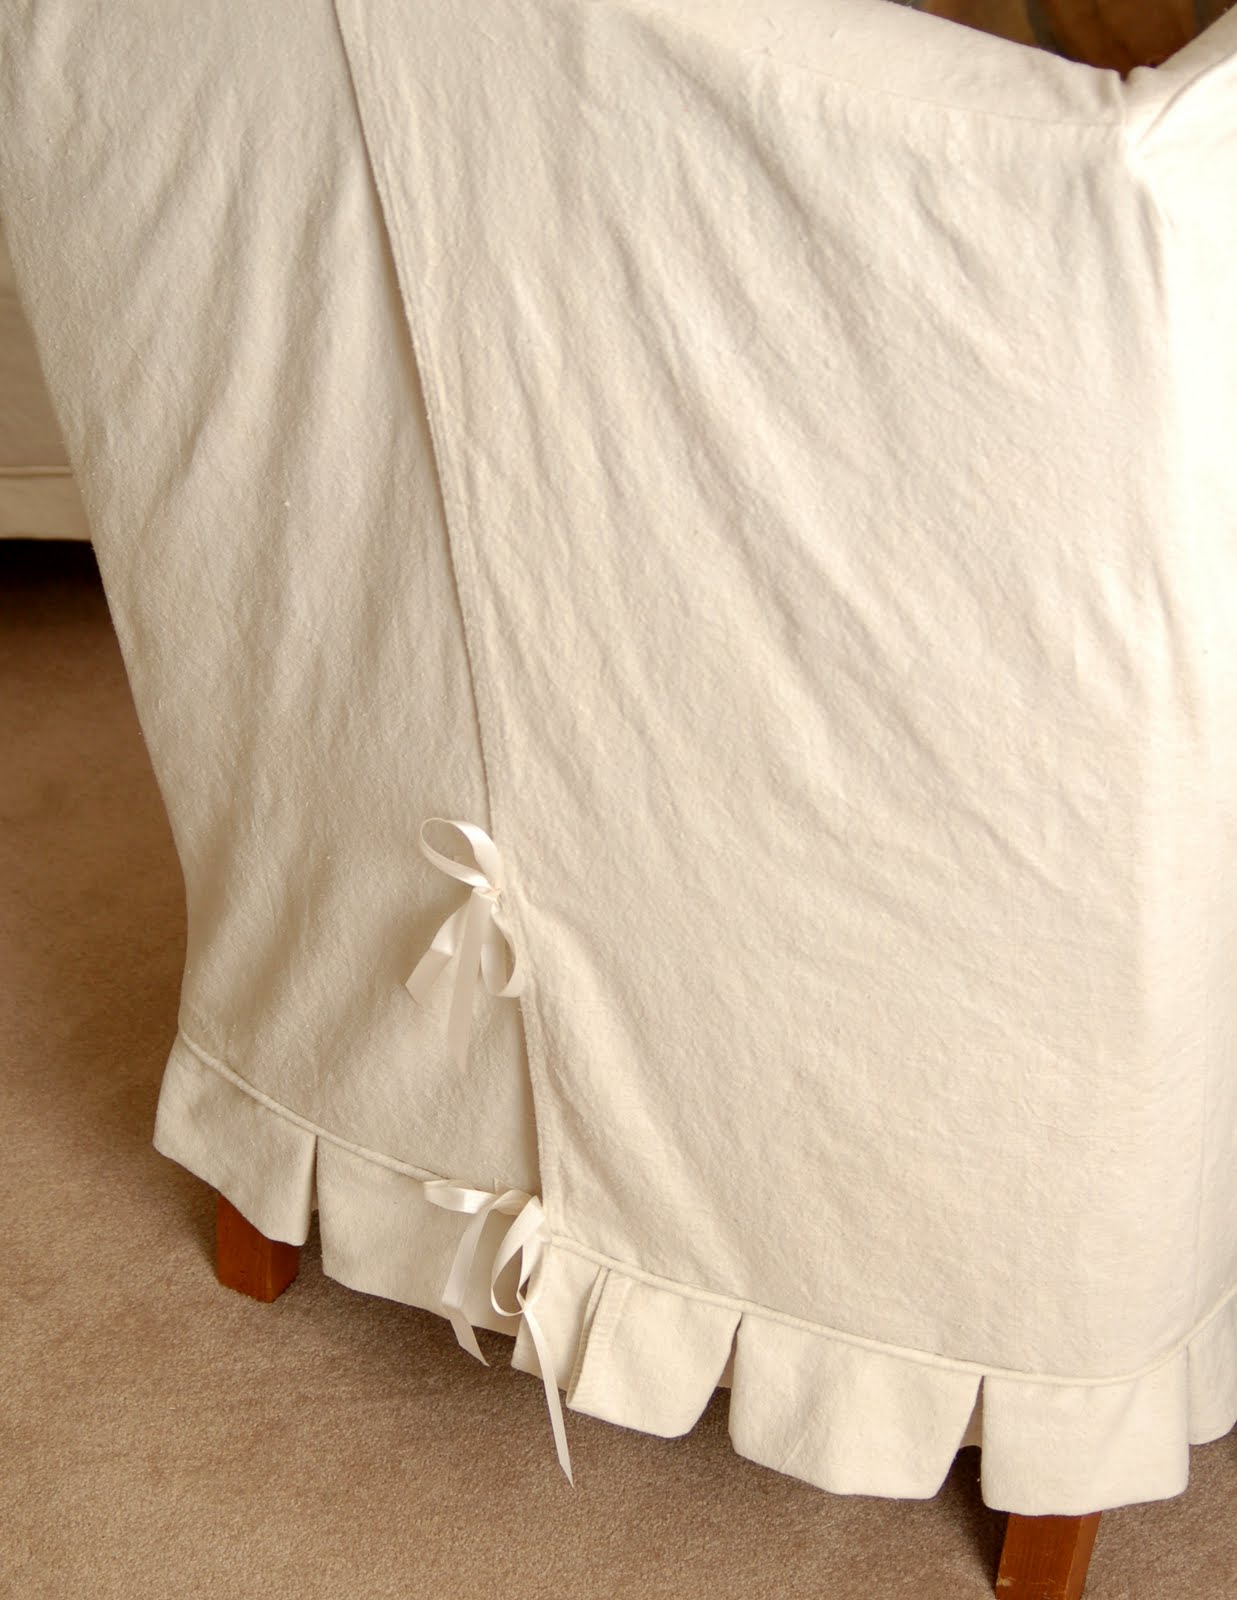 Tips Making Slipcovers With Drop Cloths Miss Mustard Seed